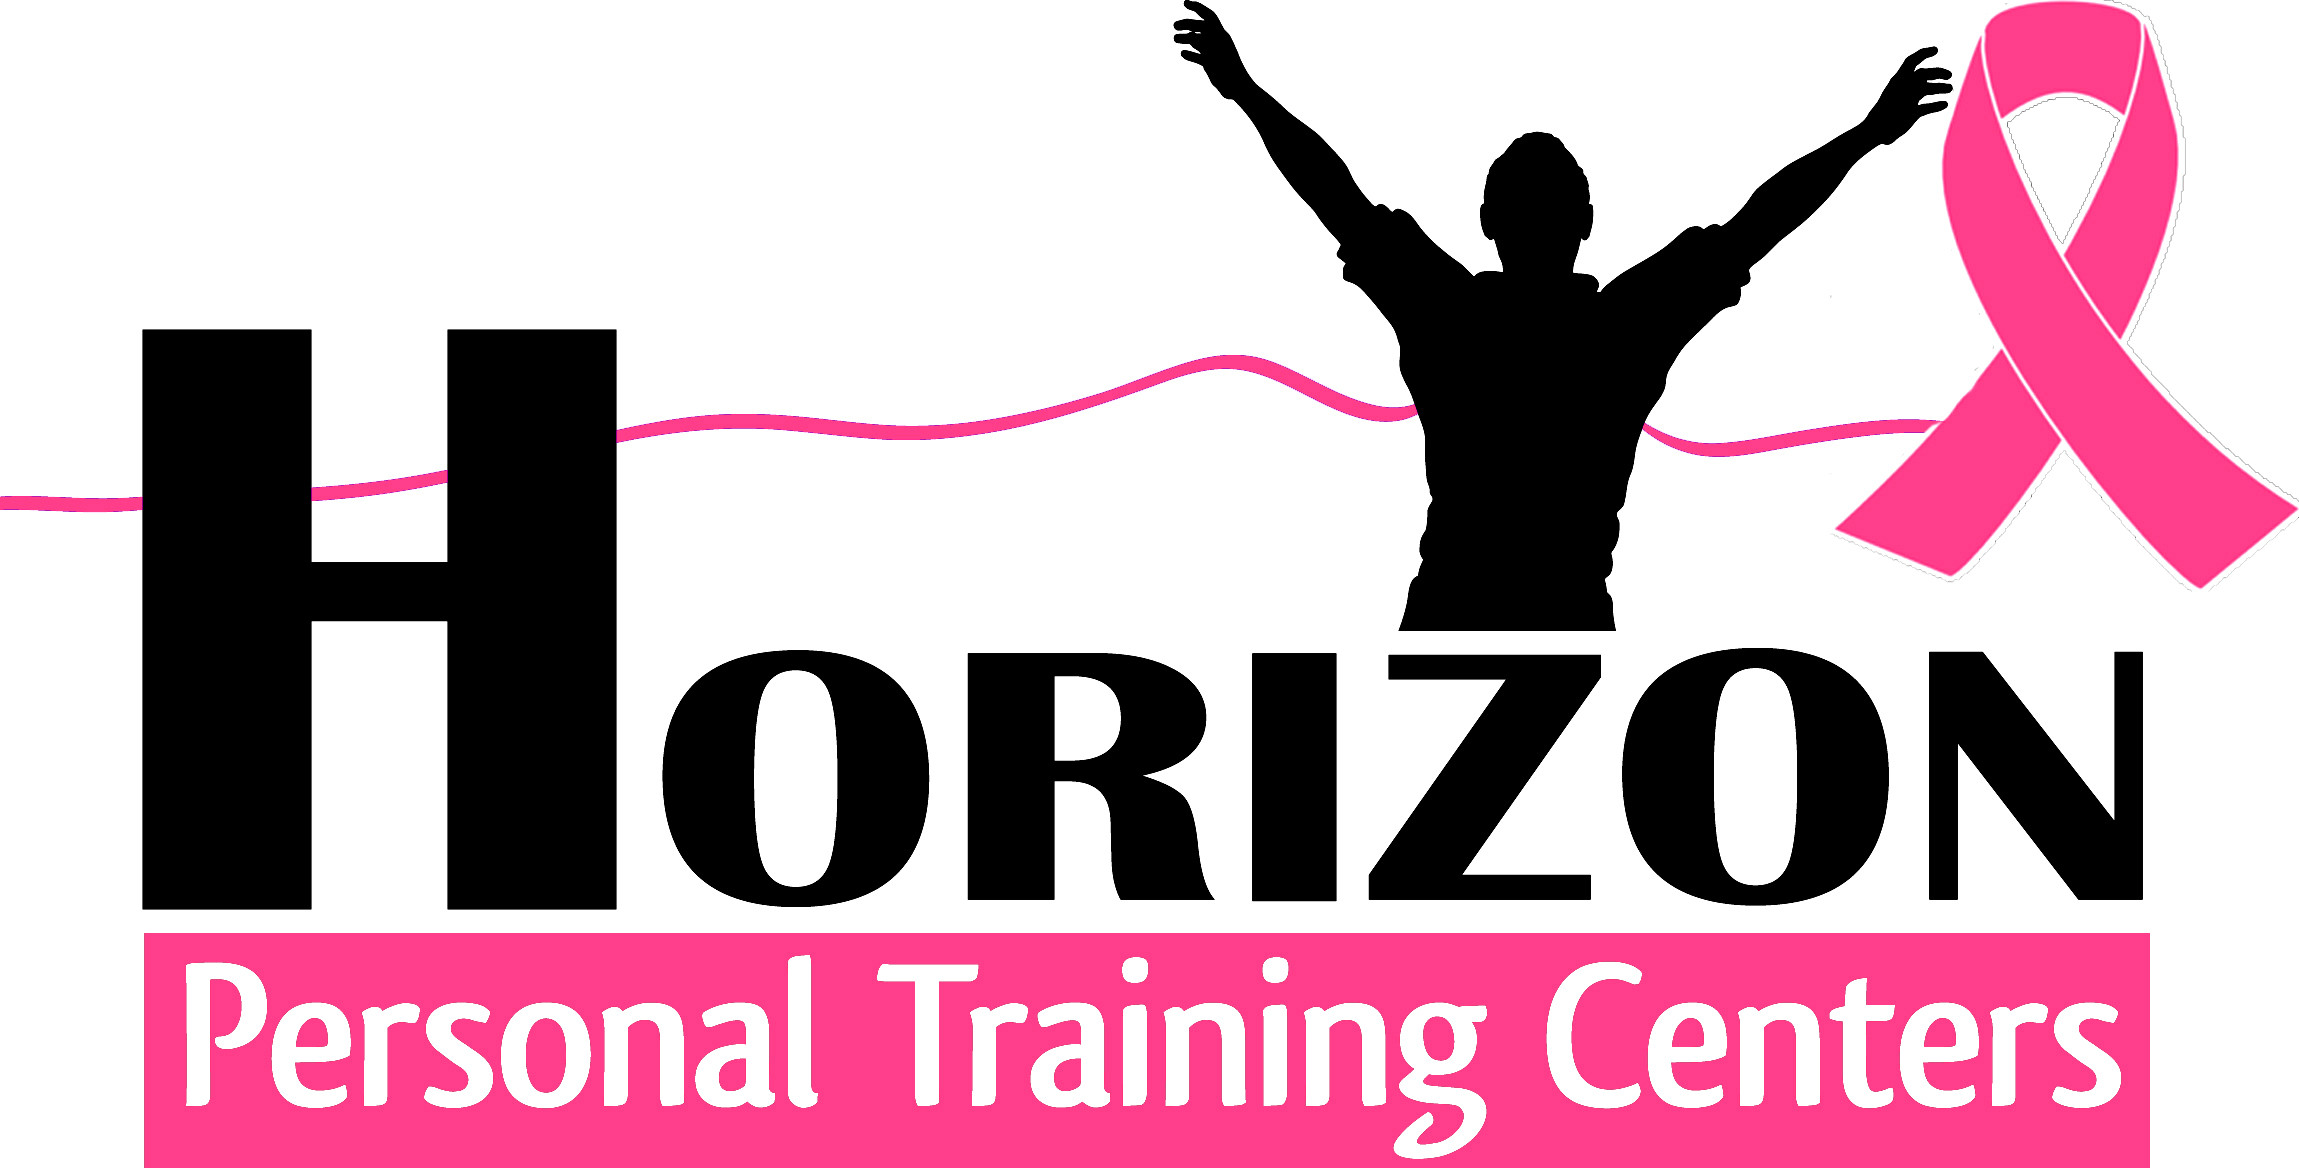 Connecticut Personal Training Centers